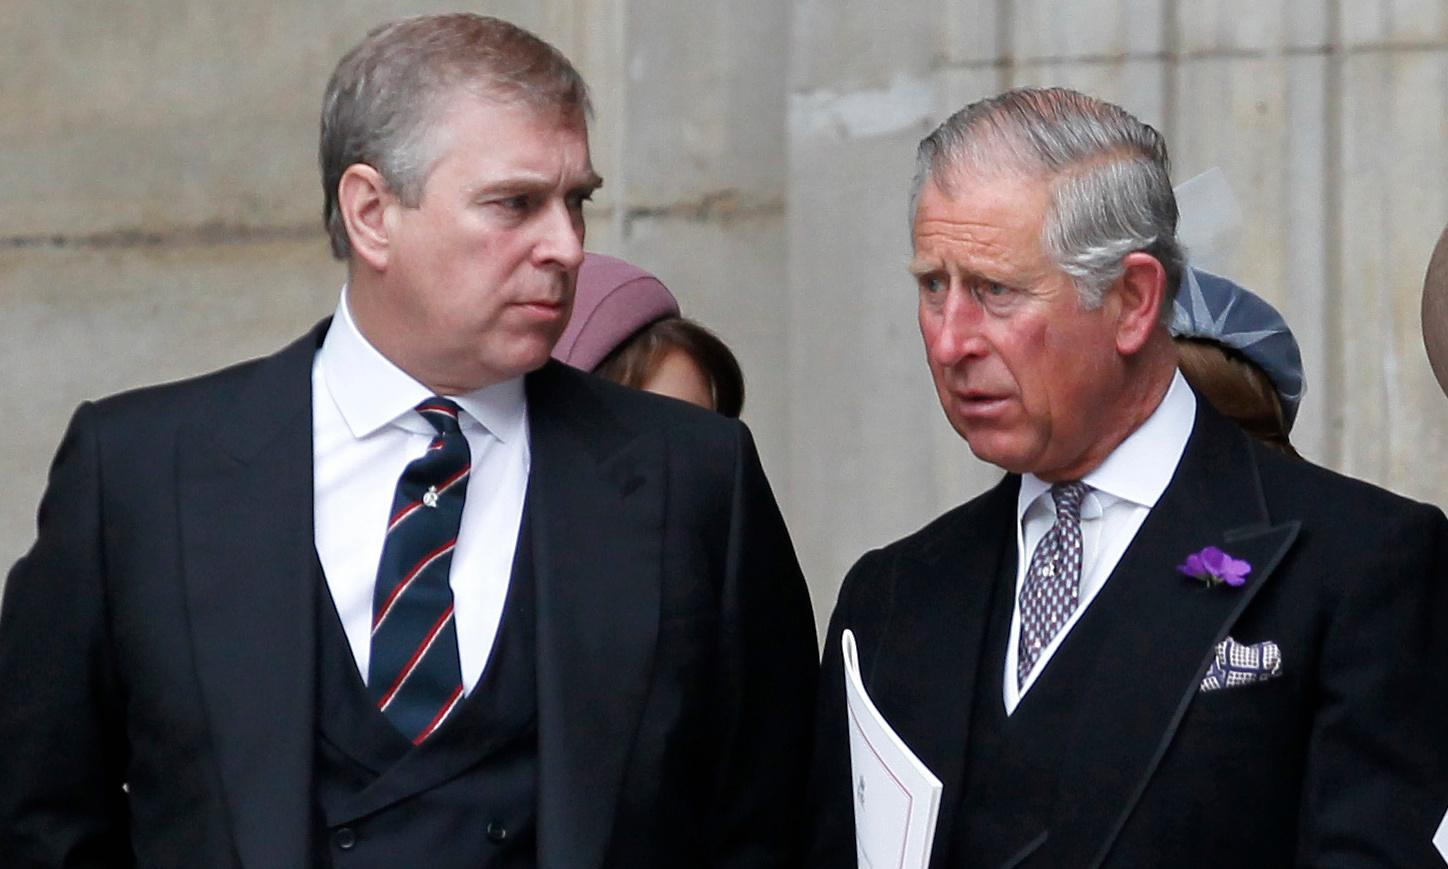 The toxic prince: Andrew handed royal P45 after tipping point reached